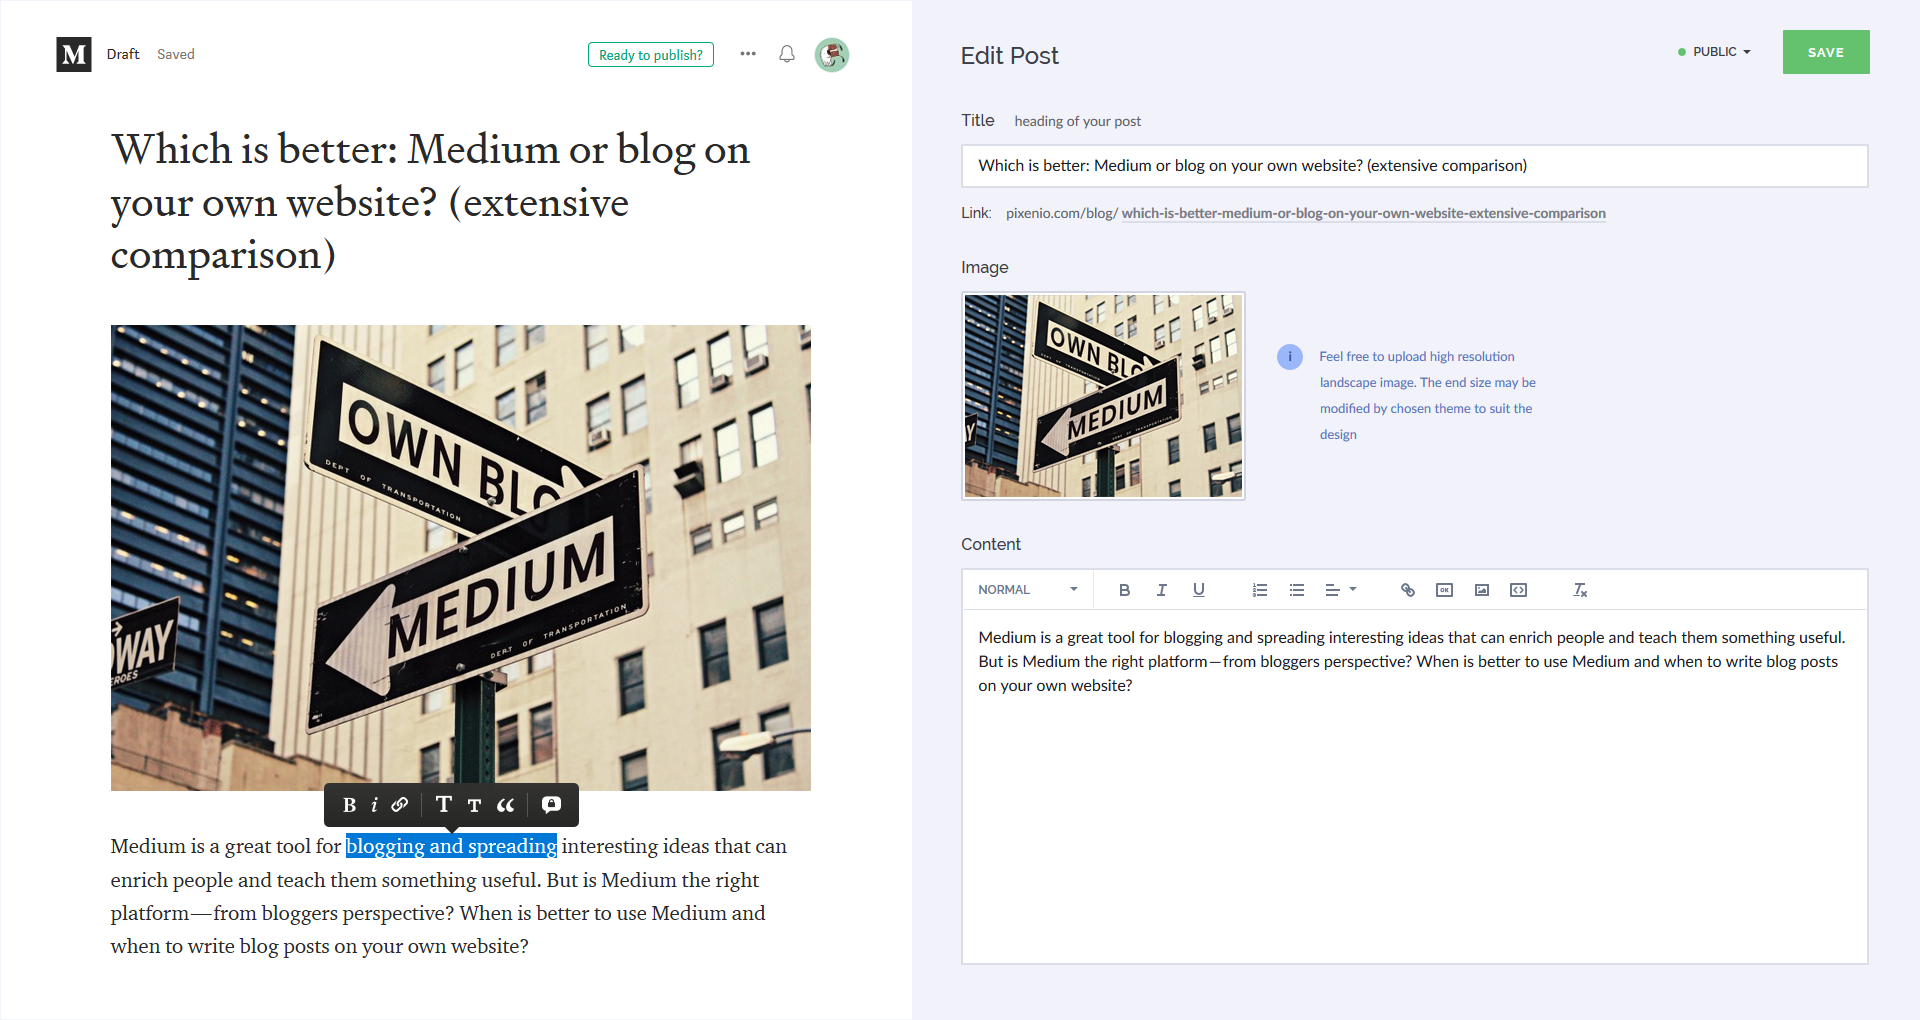 Which is better: Medium or Blog on your own website